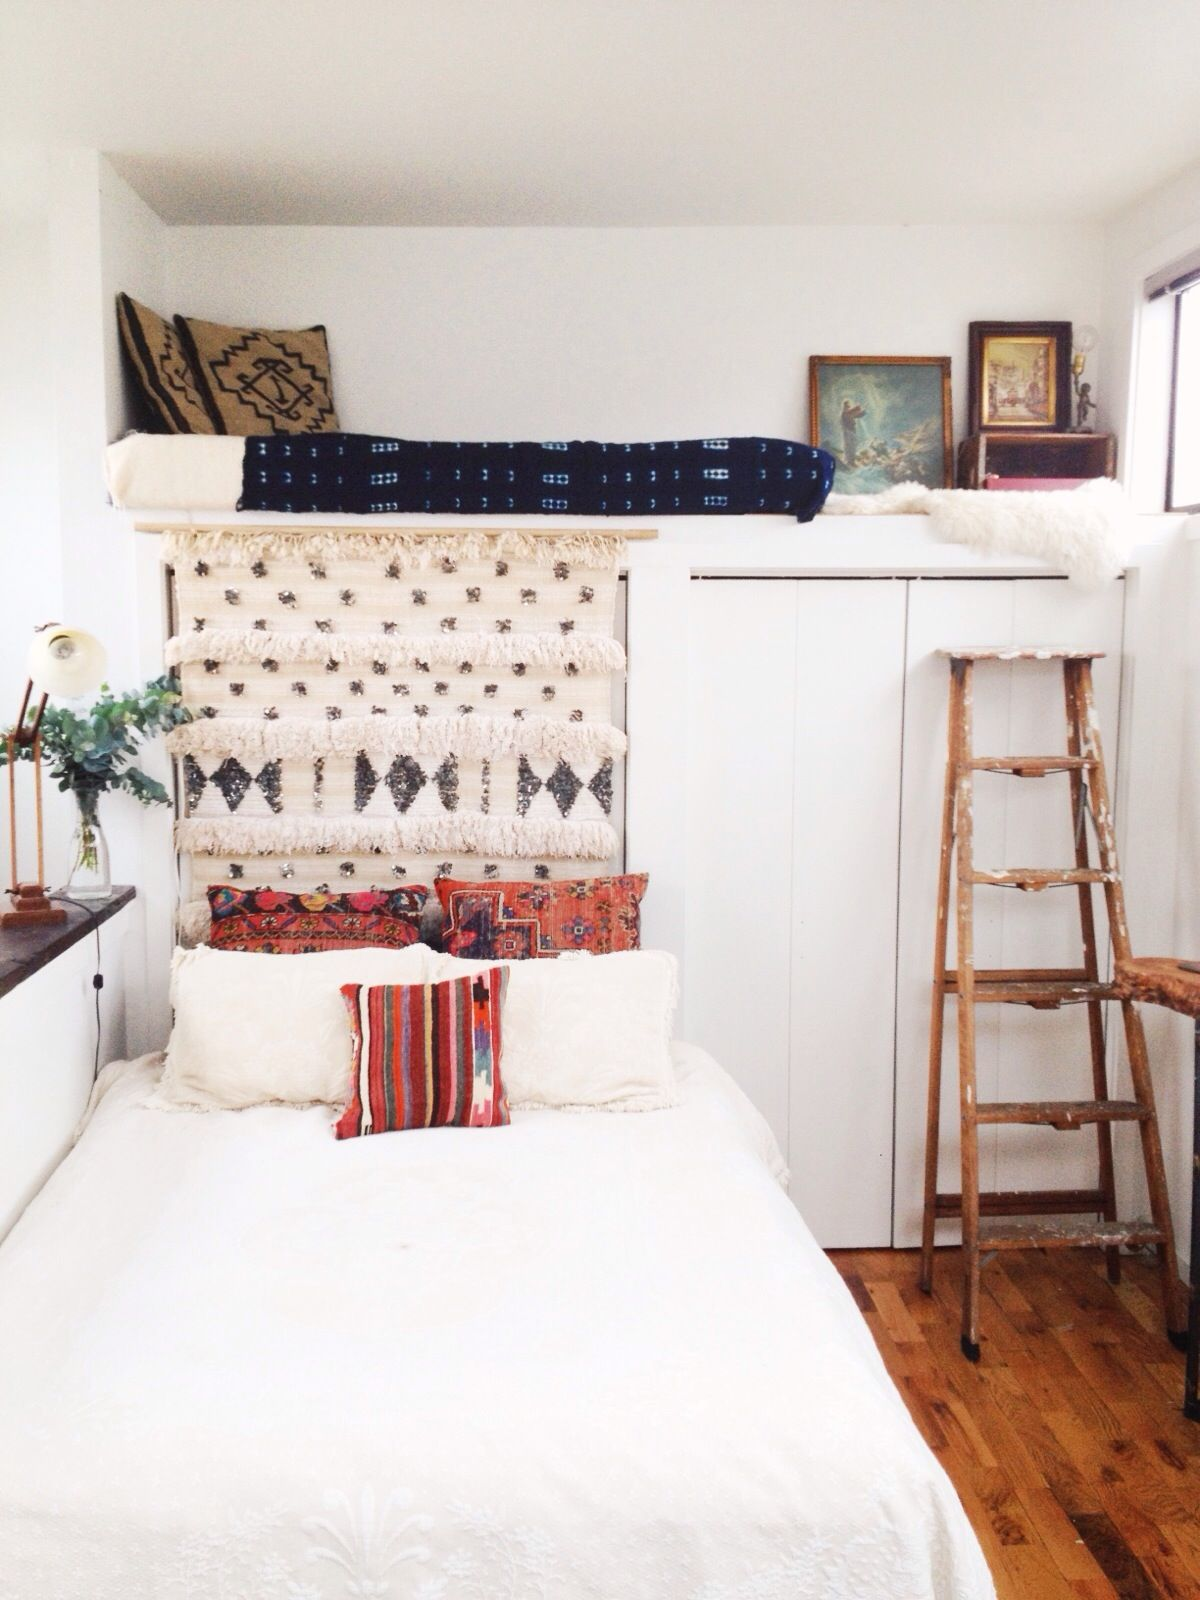 Small bedroom loft bed ideas  lofted bed bedroom home  Rooms u more  Pinterest  Small spaces